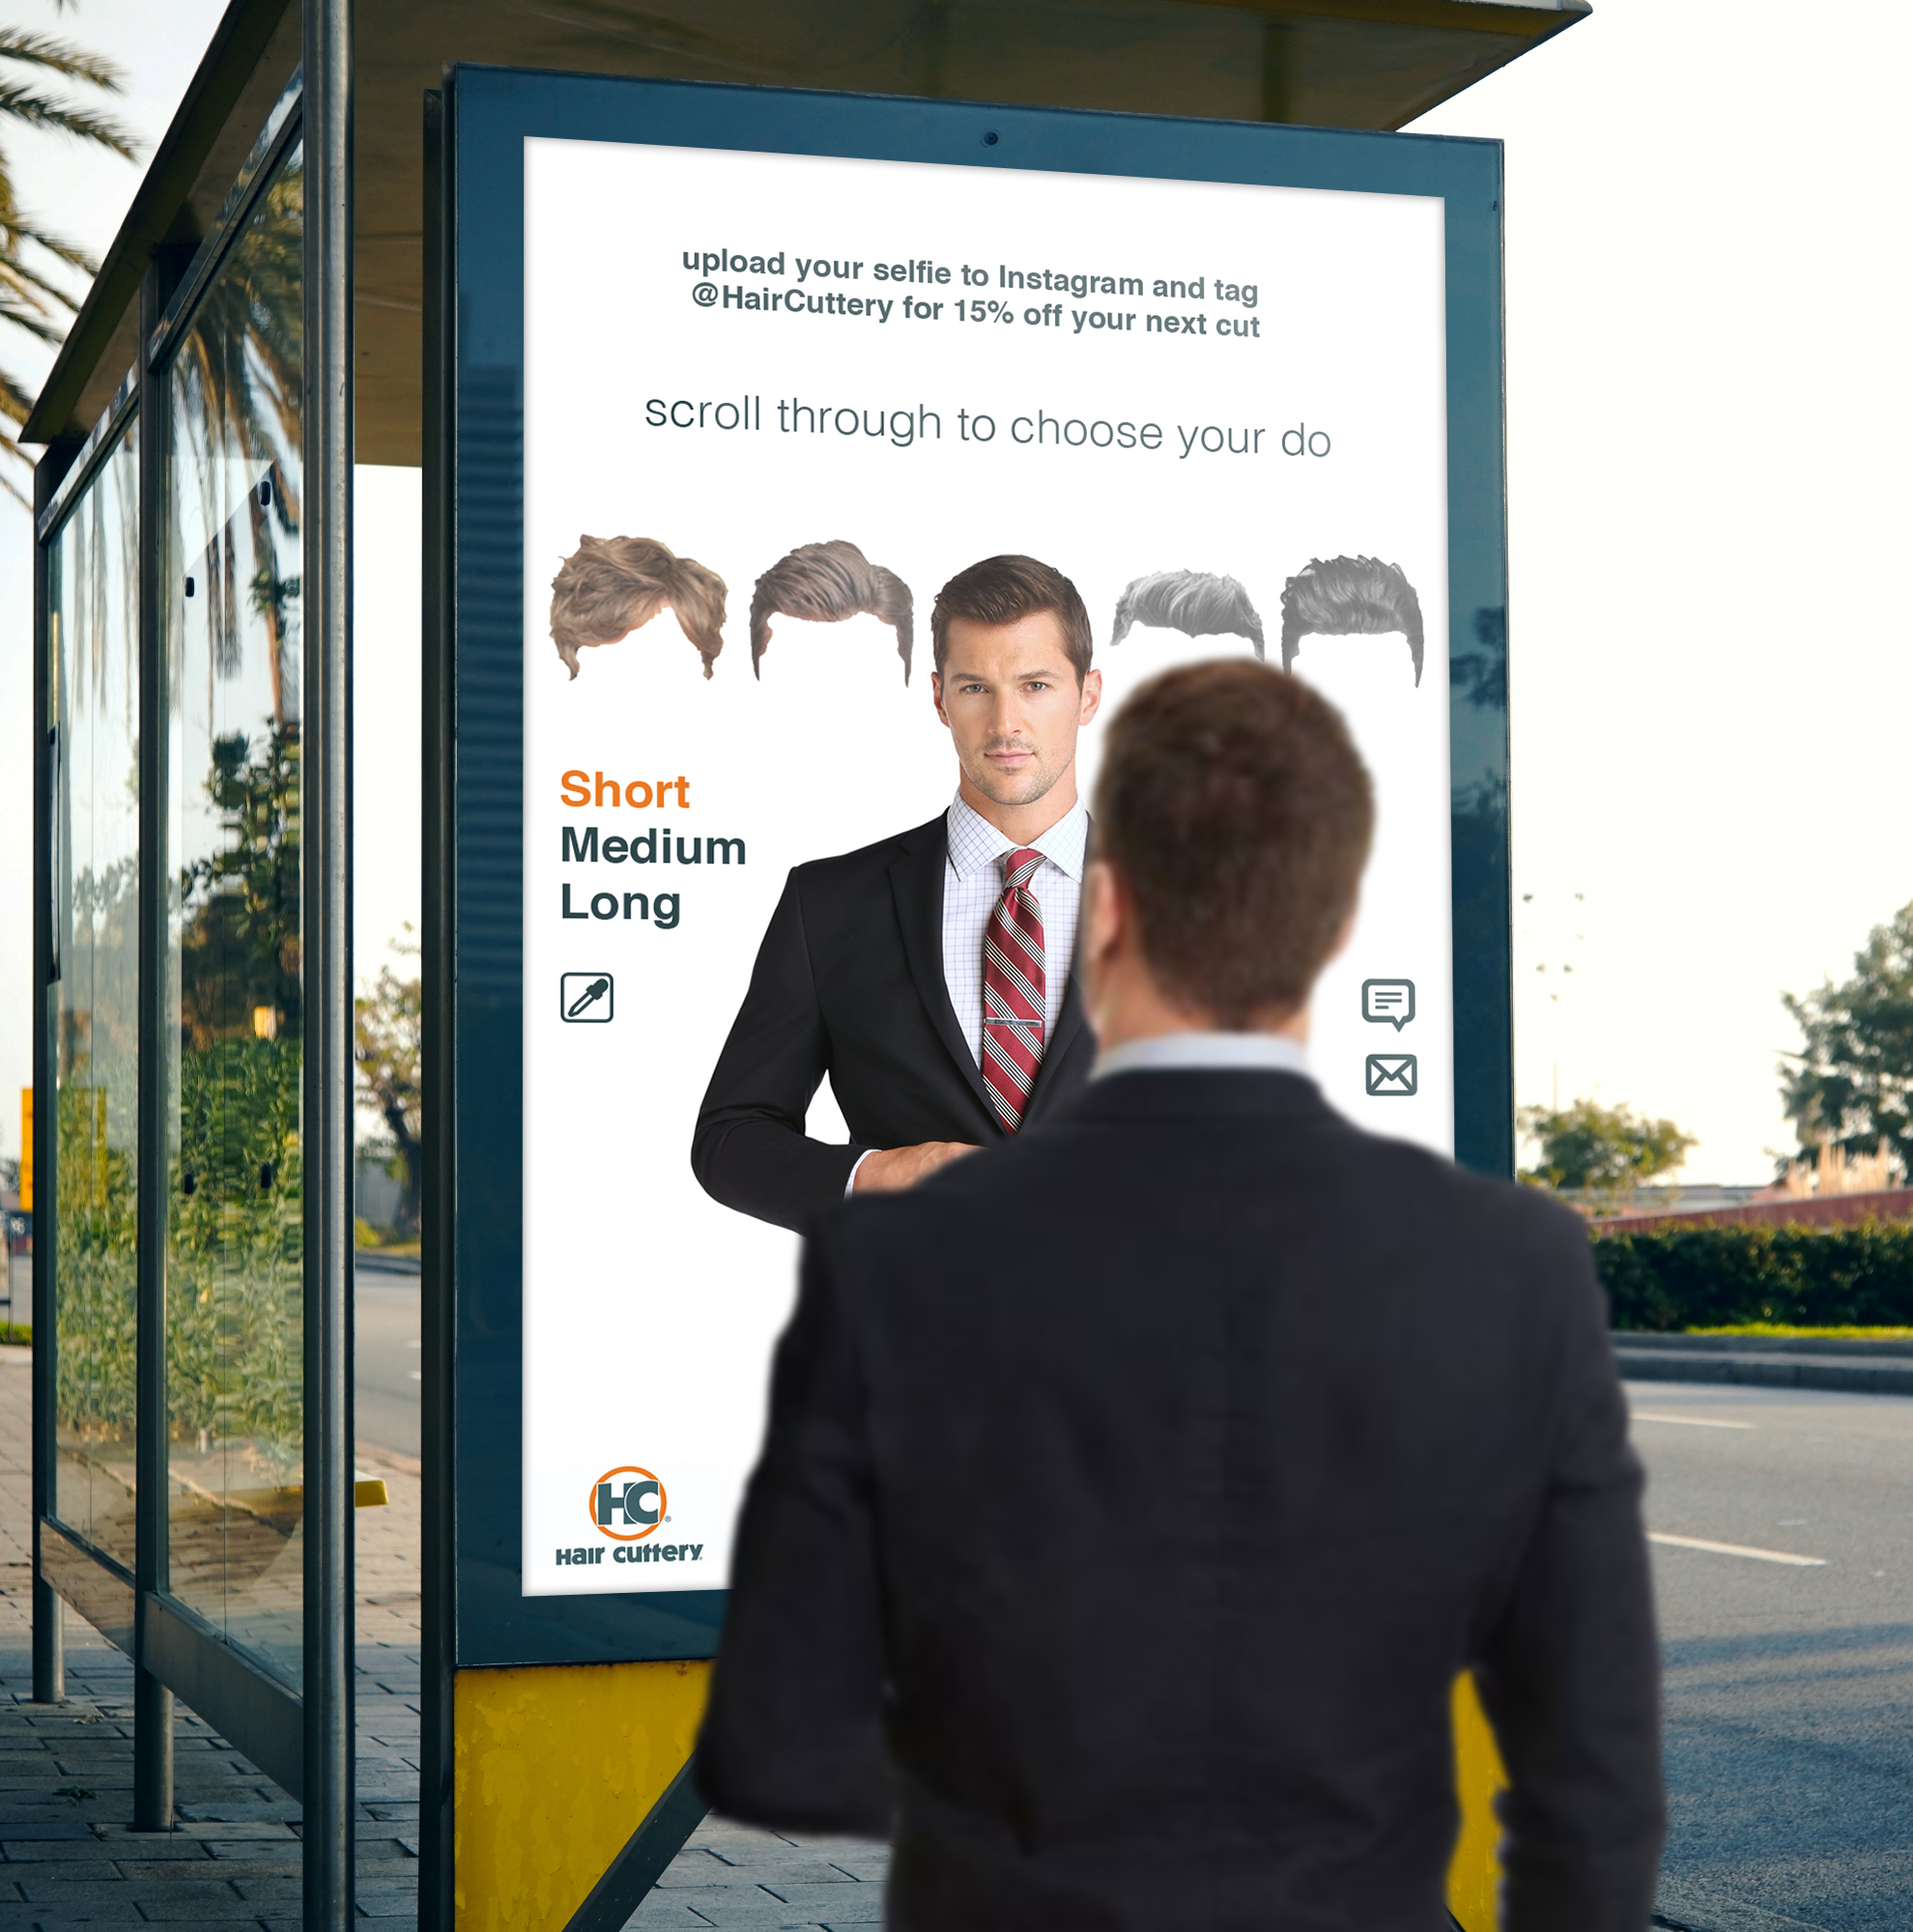 Using AR technology, this digital bus shelter ad lets pedestrians try out different hairstyles and send themselves a photo of the result. It is particularly useful for a walk-in salon like Hair Cuttery, where stylists often ask new customers for a reference photo.